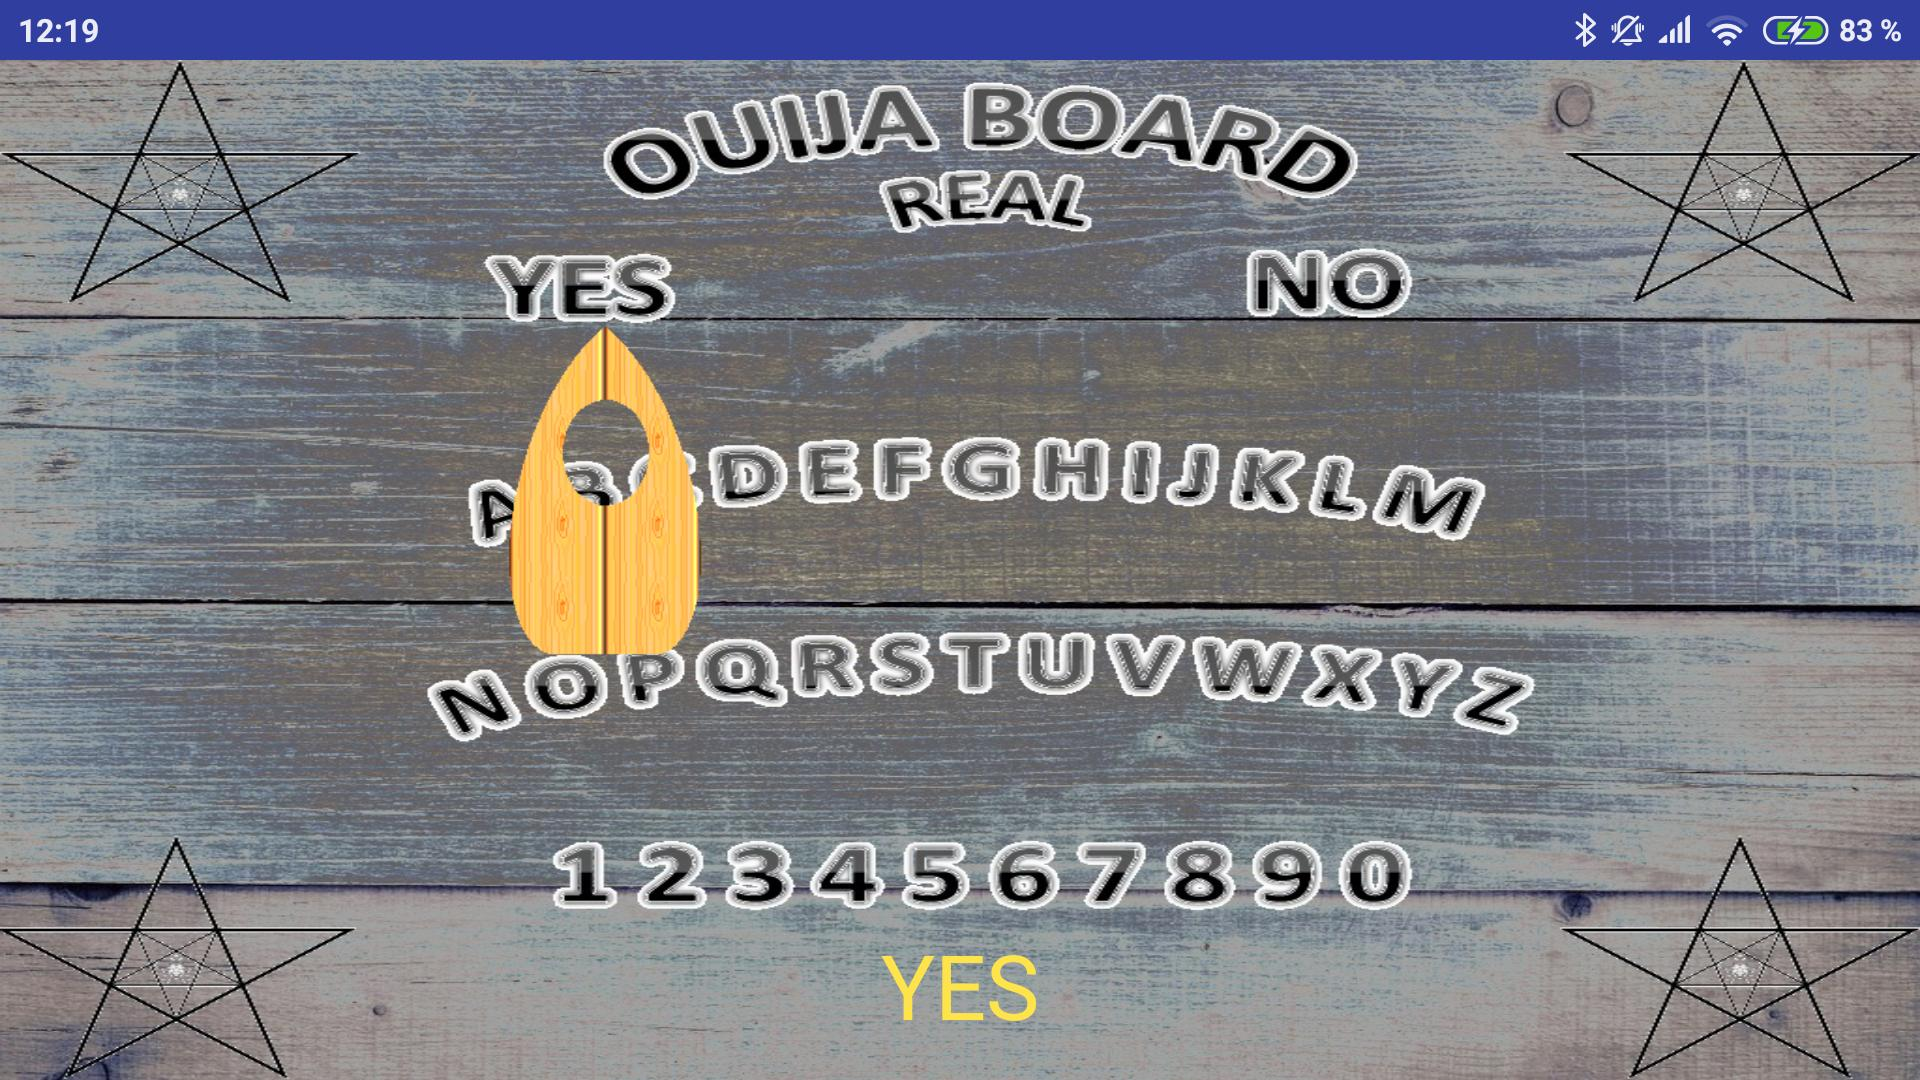 Ouija Board Real for Android - APK Download